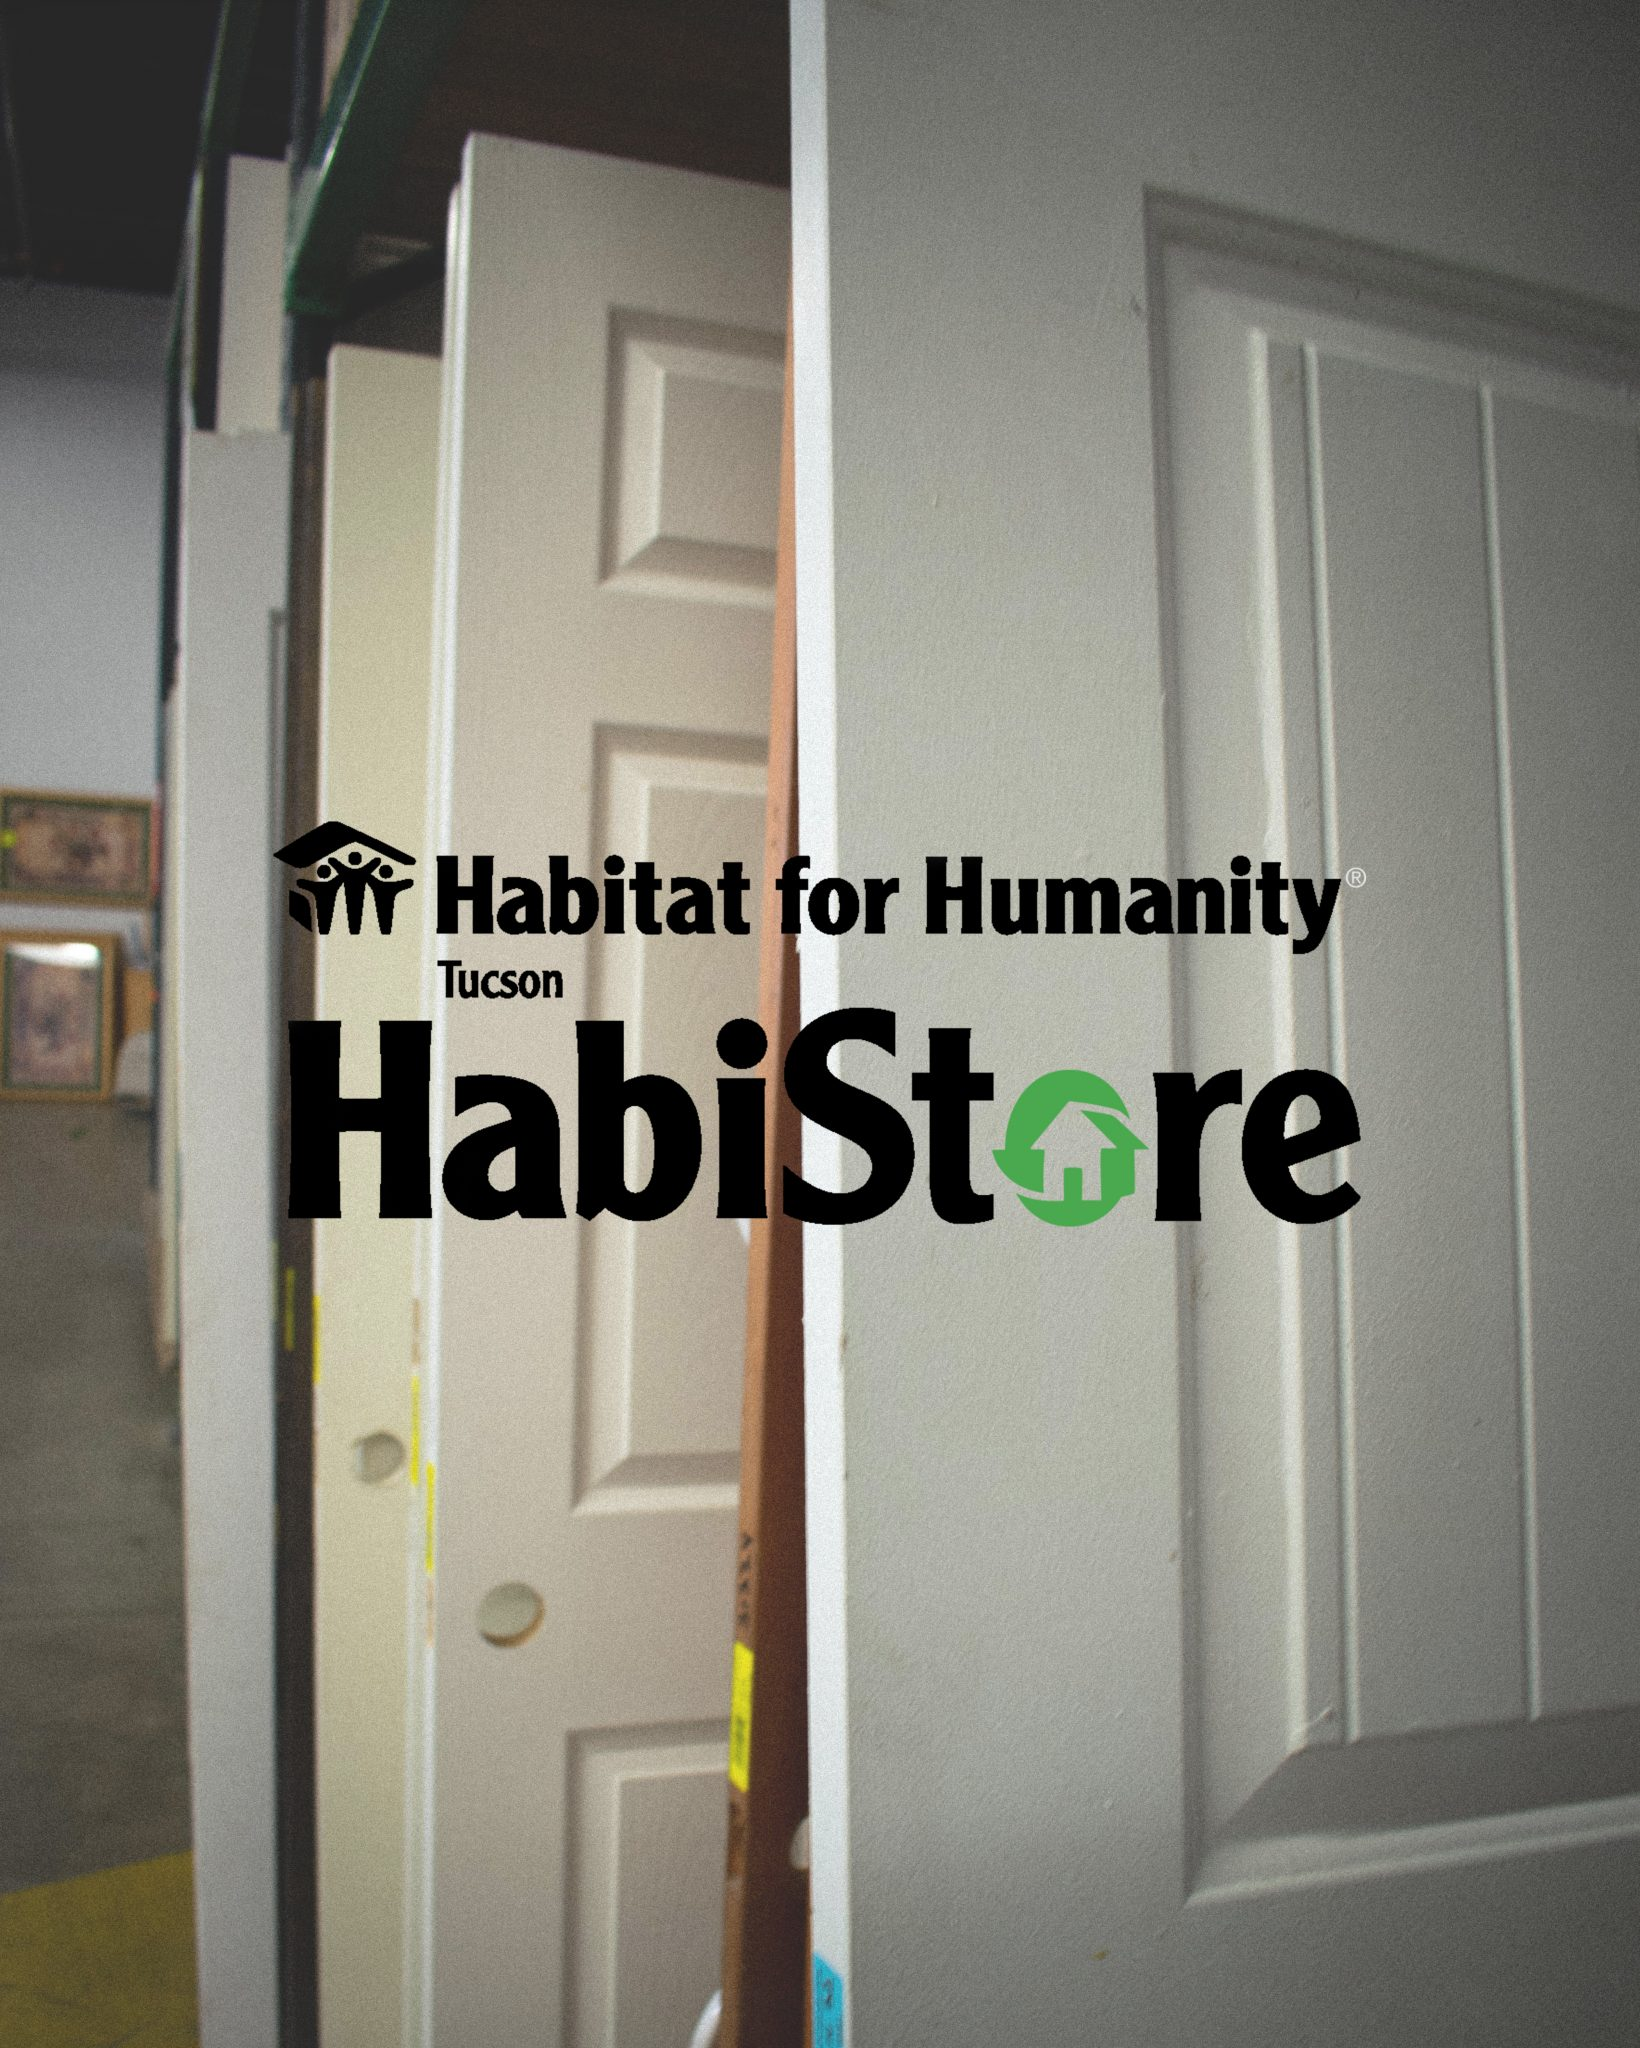 The Habitat for Humanity Tucson HabiStore